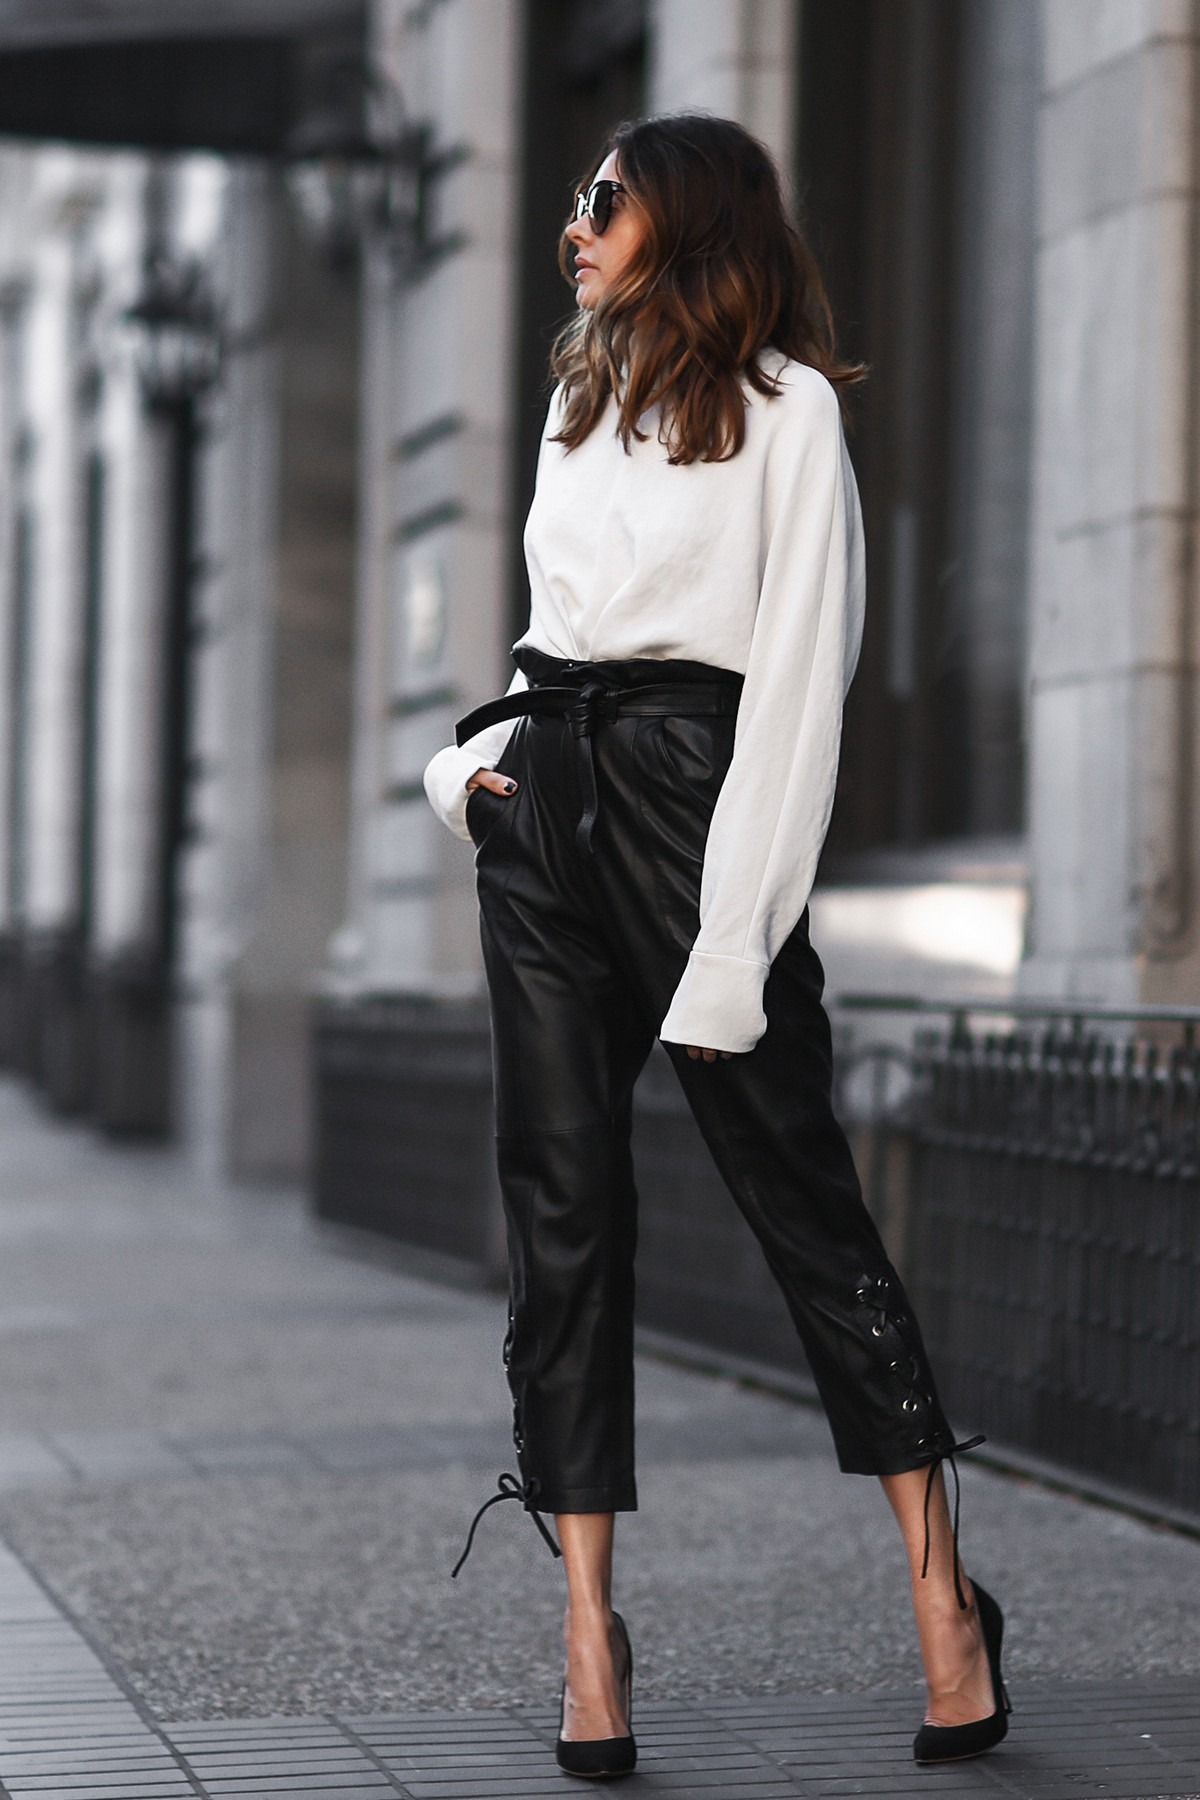 black leather pants, white blouse, black pumps